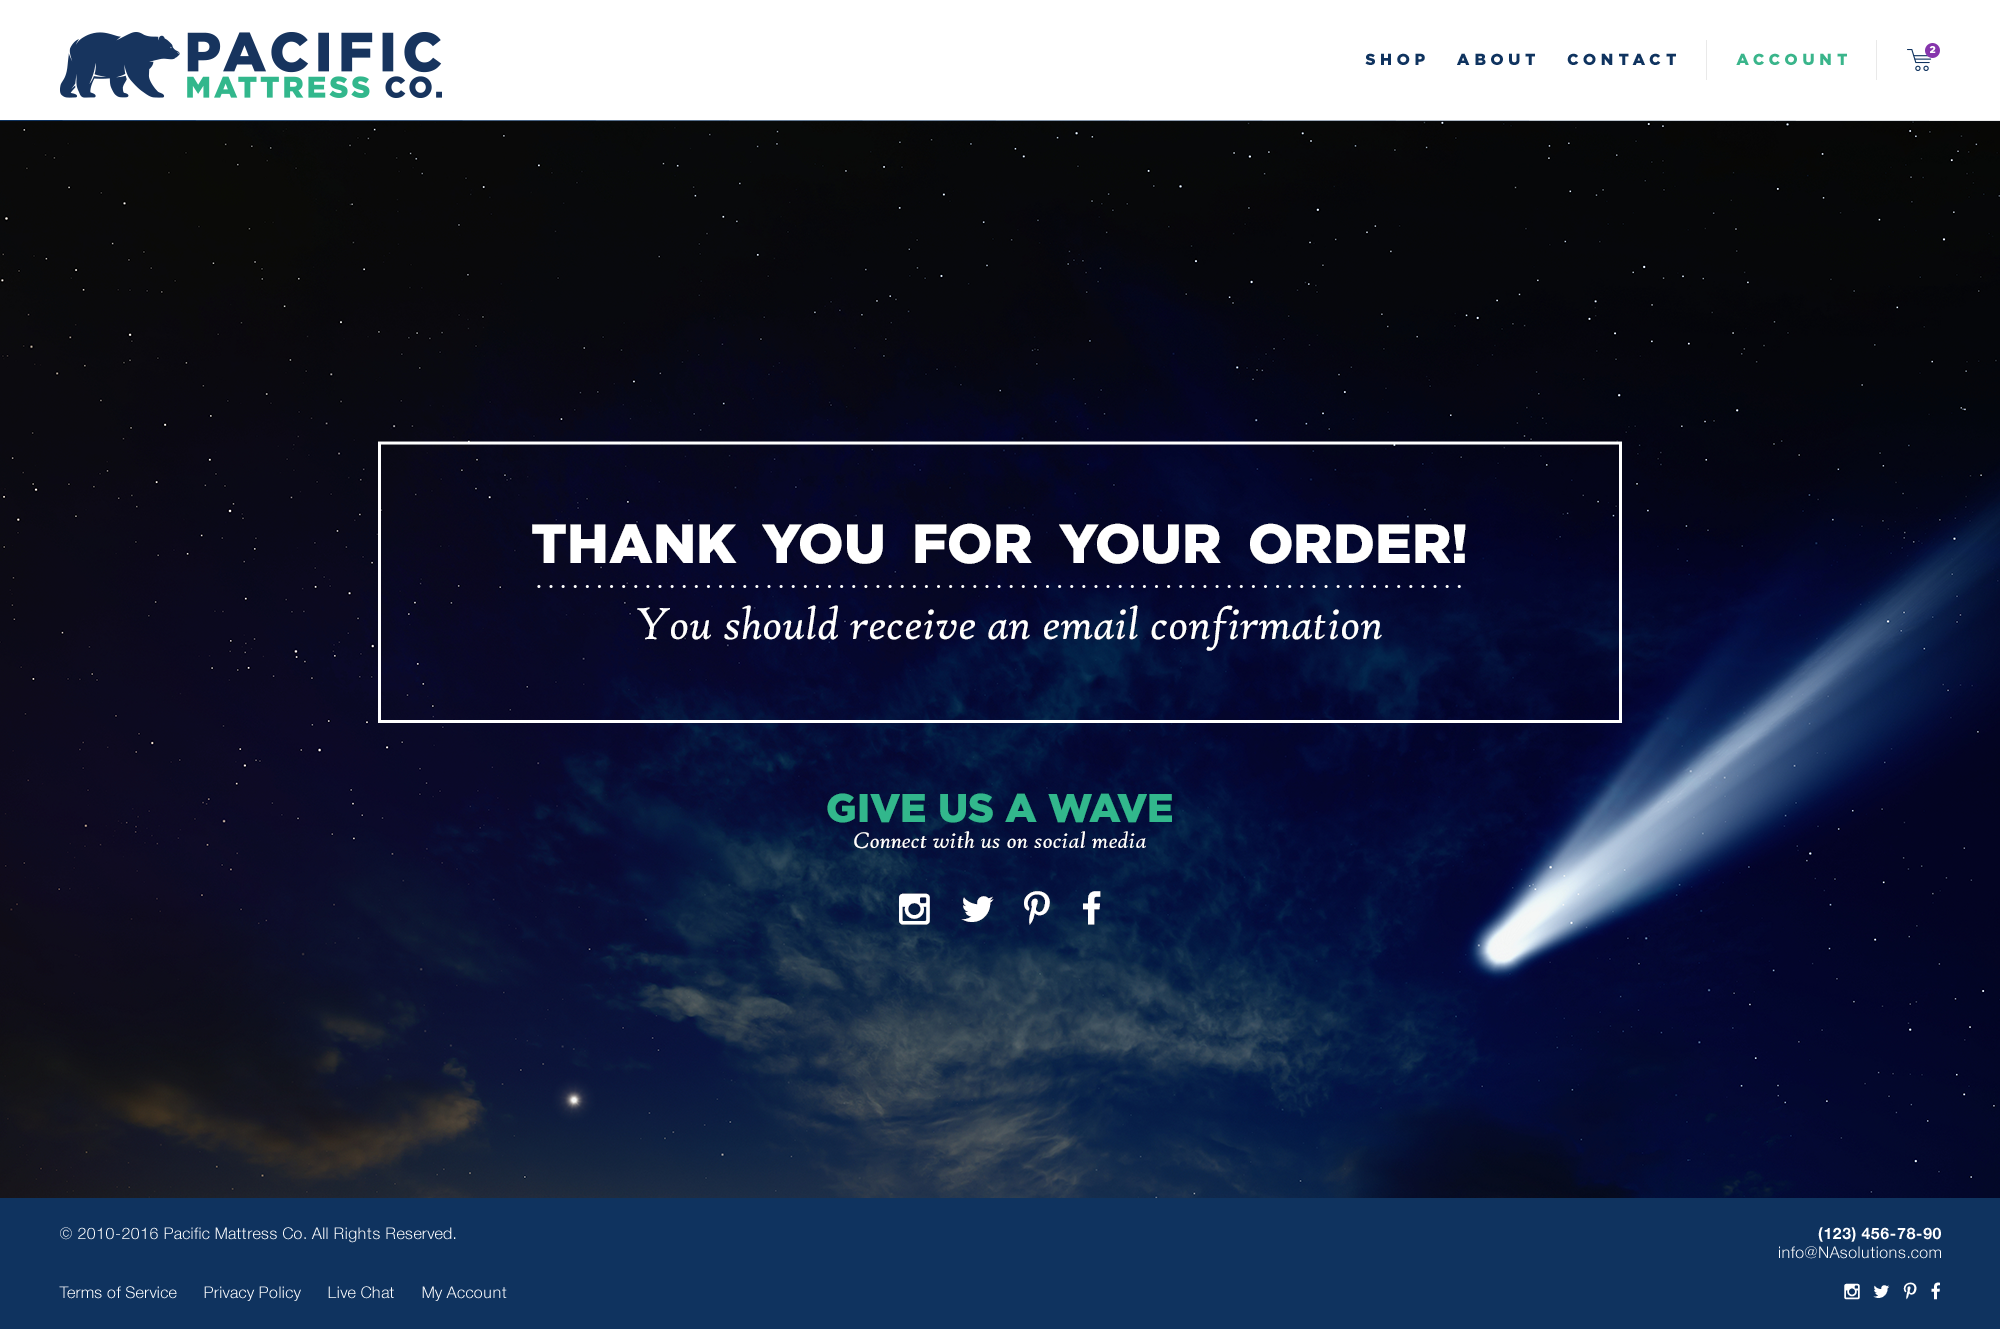 Thank you for your order! Success ecommerce website page